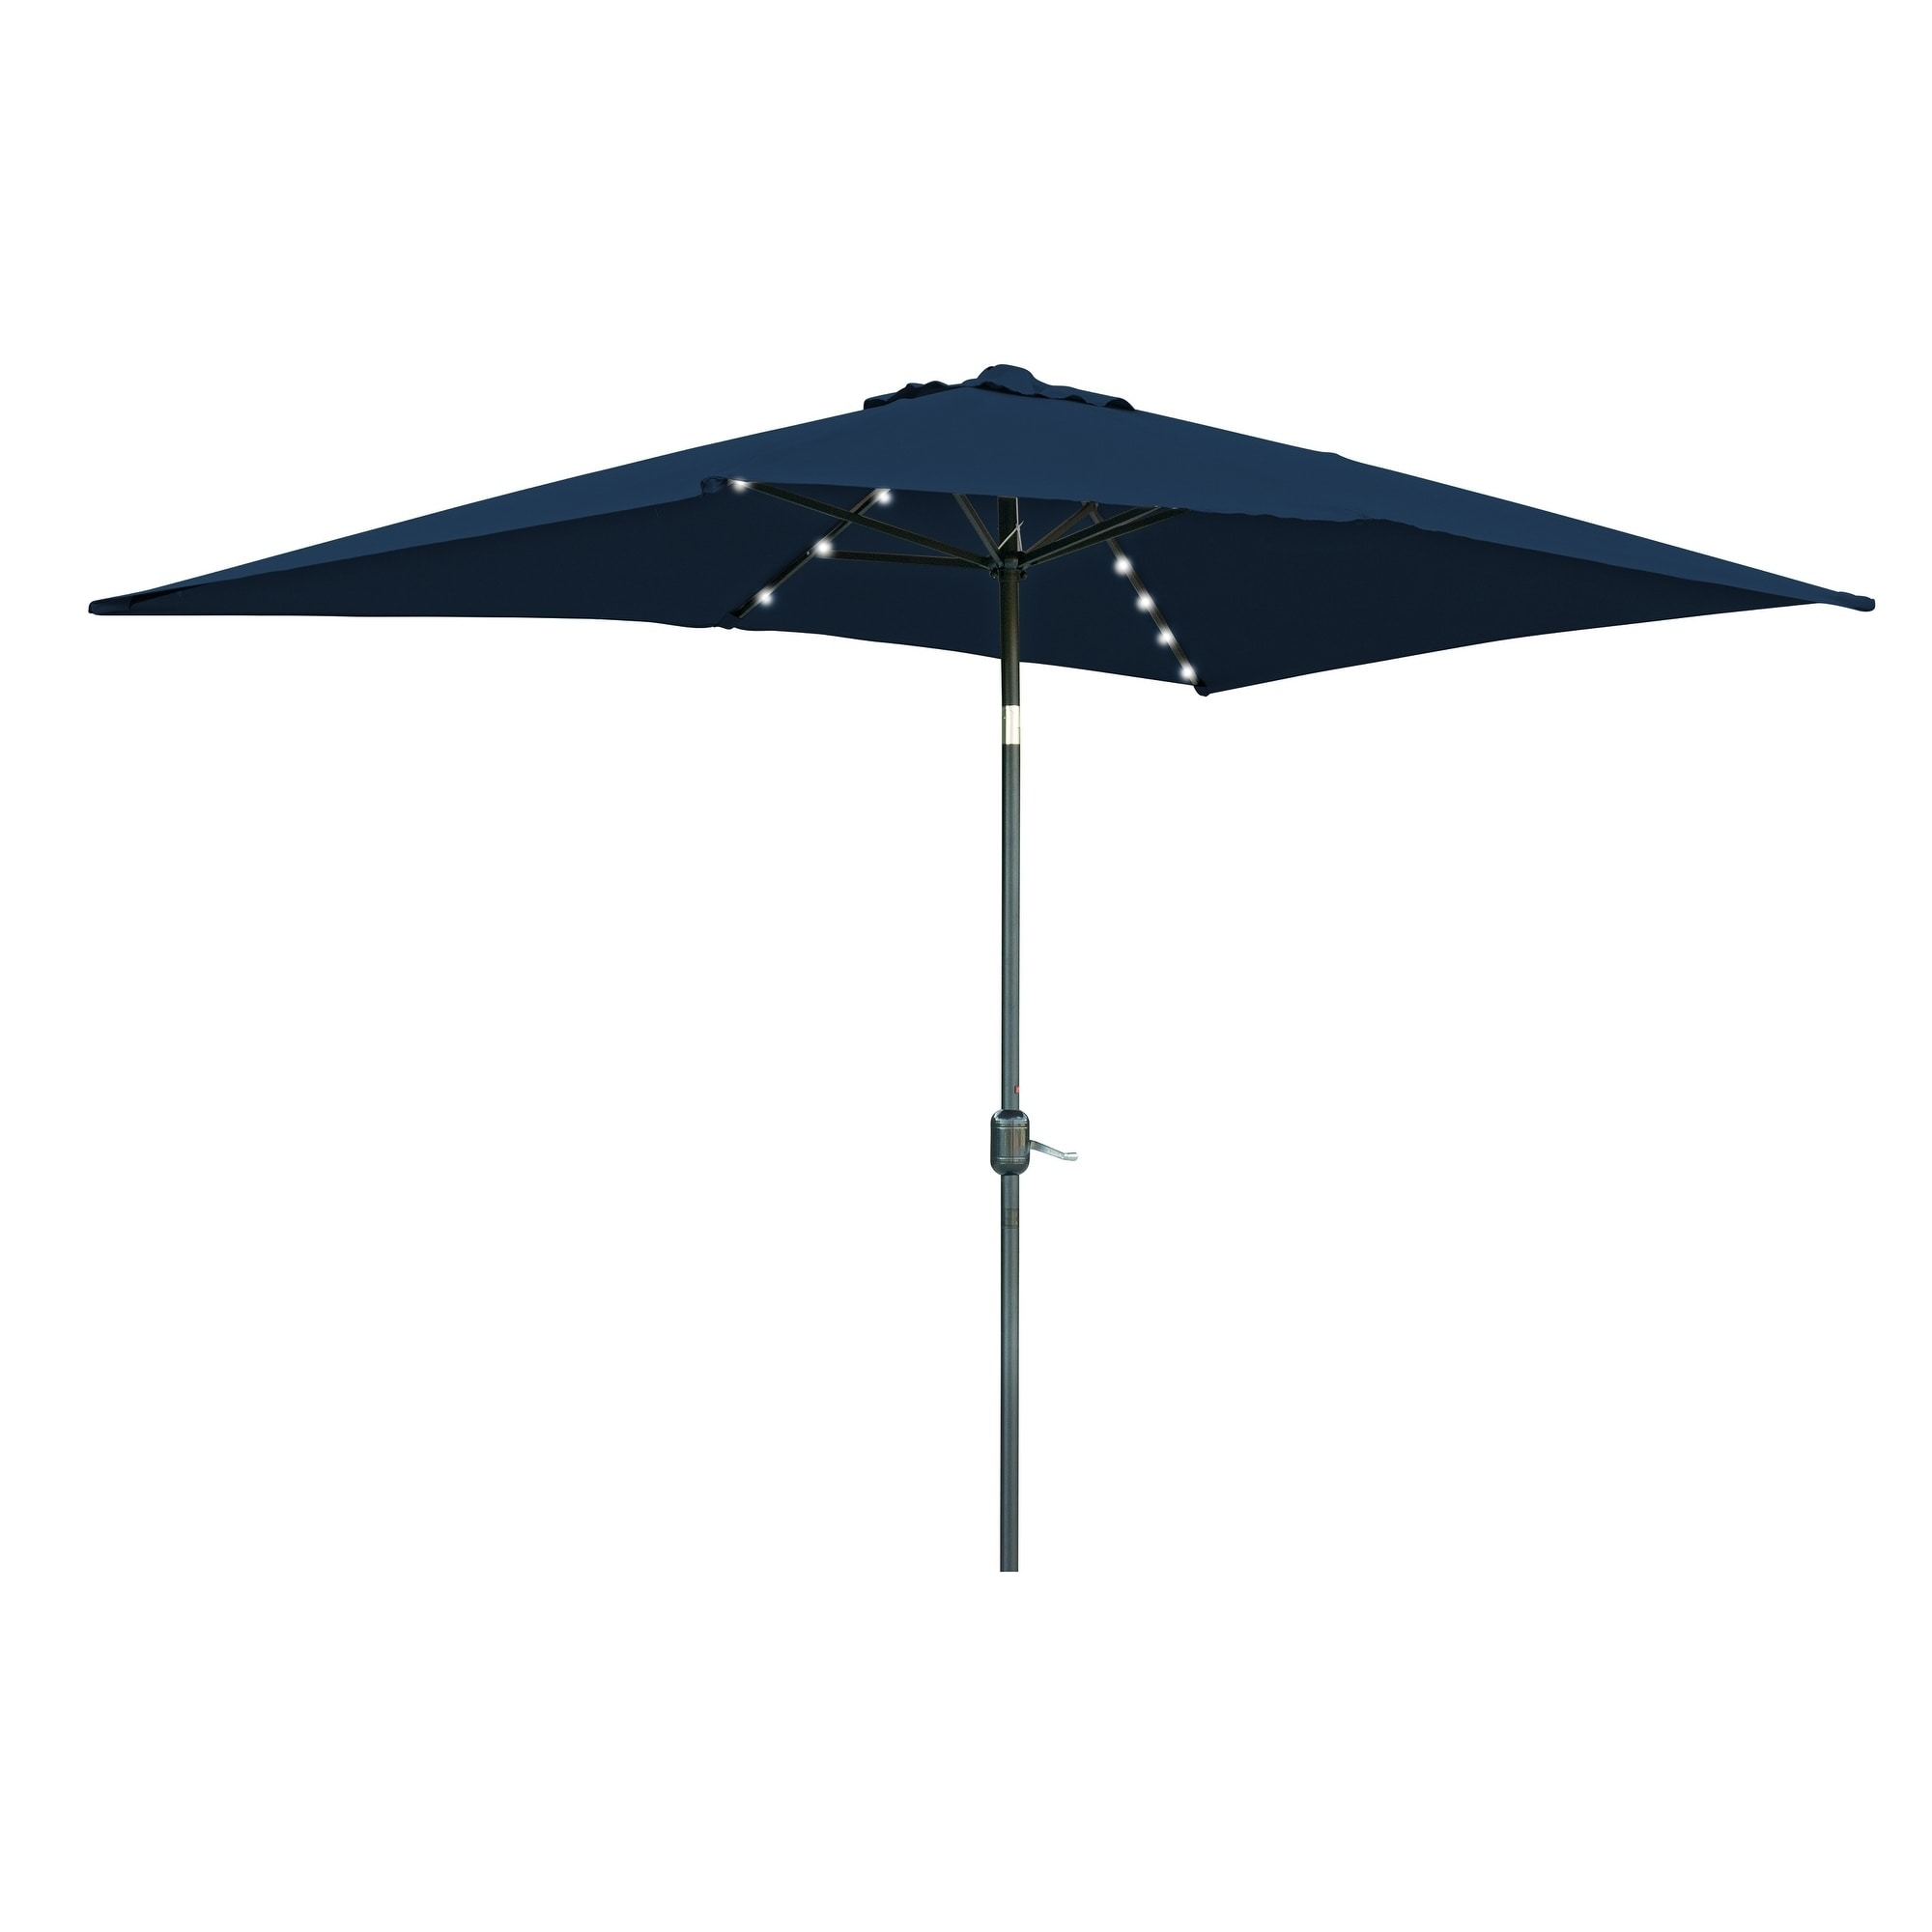 Shop Rectangular Solar Powered LED Lighted Patio Umbrella   10u0027 X 6.5u0027   By  Trademark Innovations   Free Shipping Today   Overstock.com   18160974